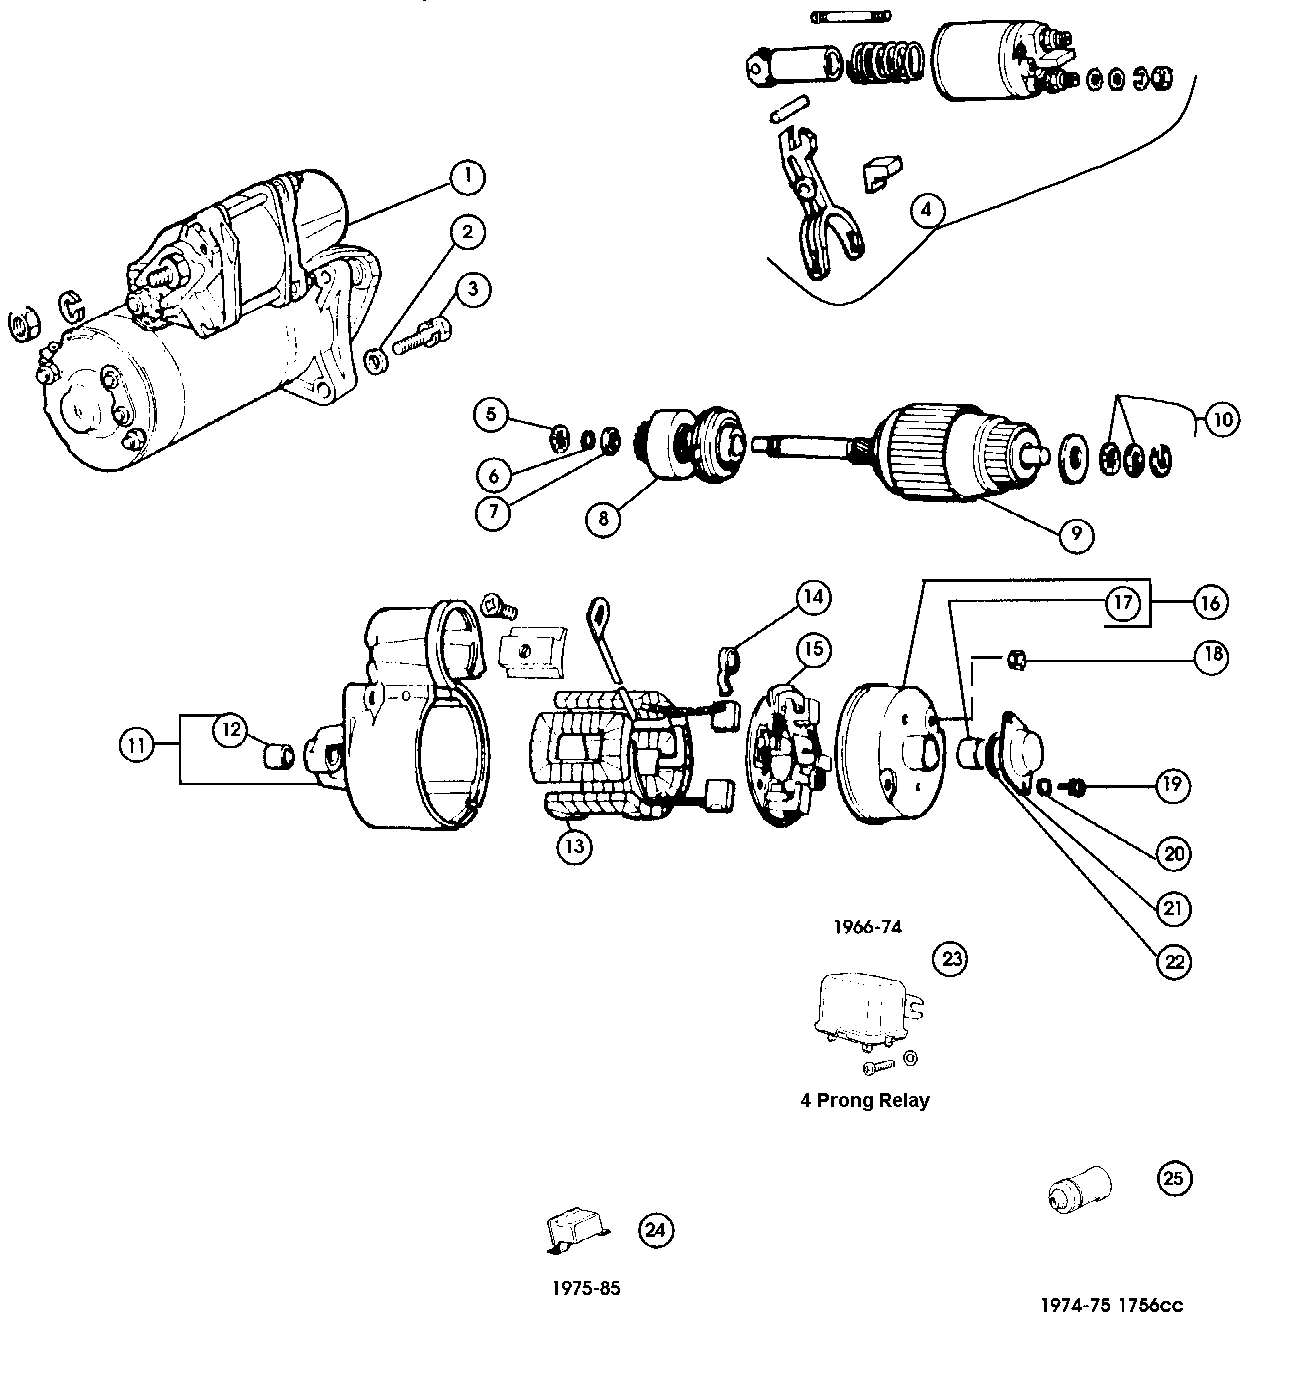 27si Delco Remy Alternator Wiring Diagram - Wiring Diagram G8